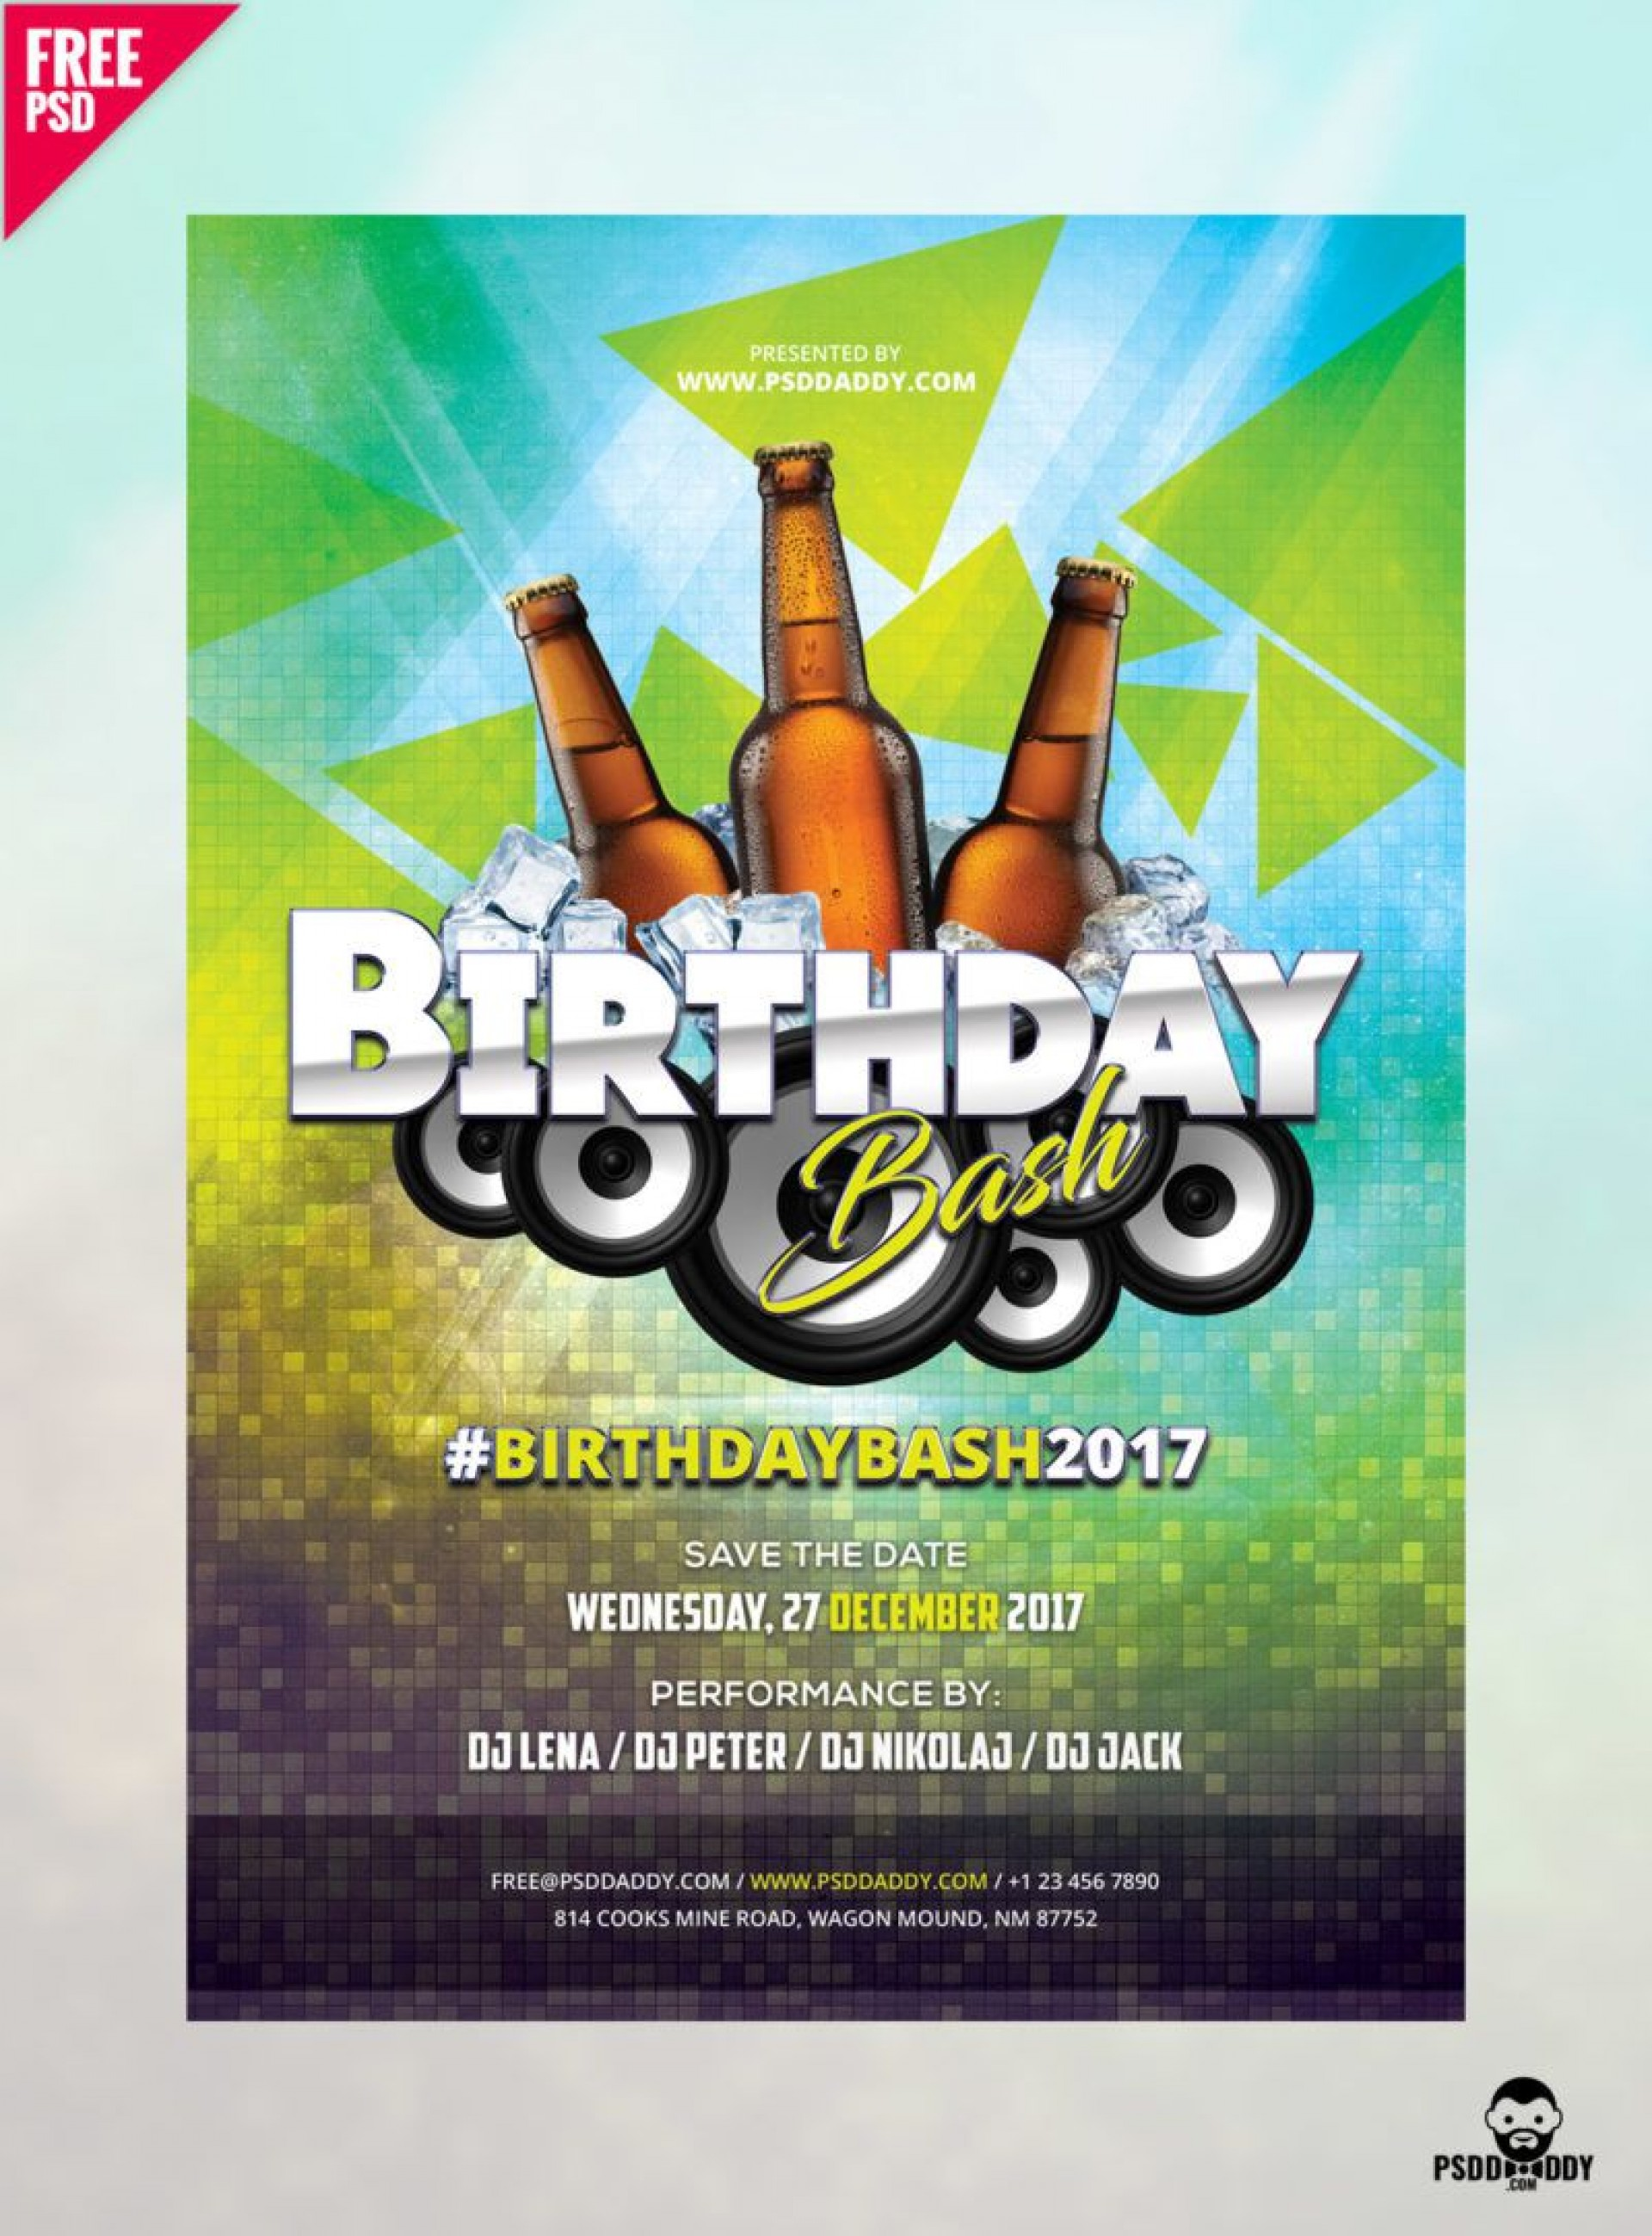 009 Imposing Birthday Flyer Template Psd Free Download Highest Clarity 1920